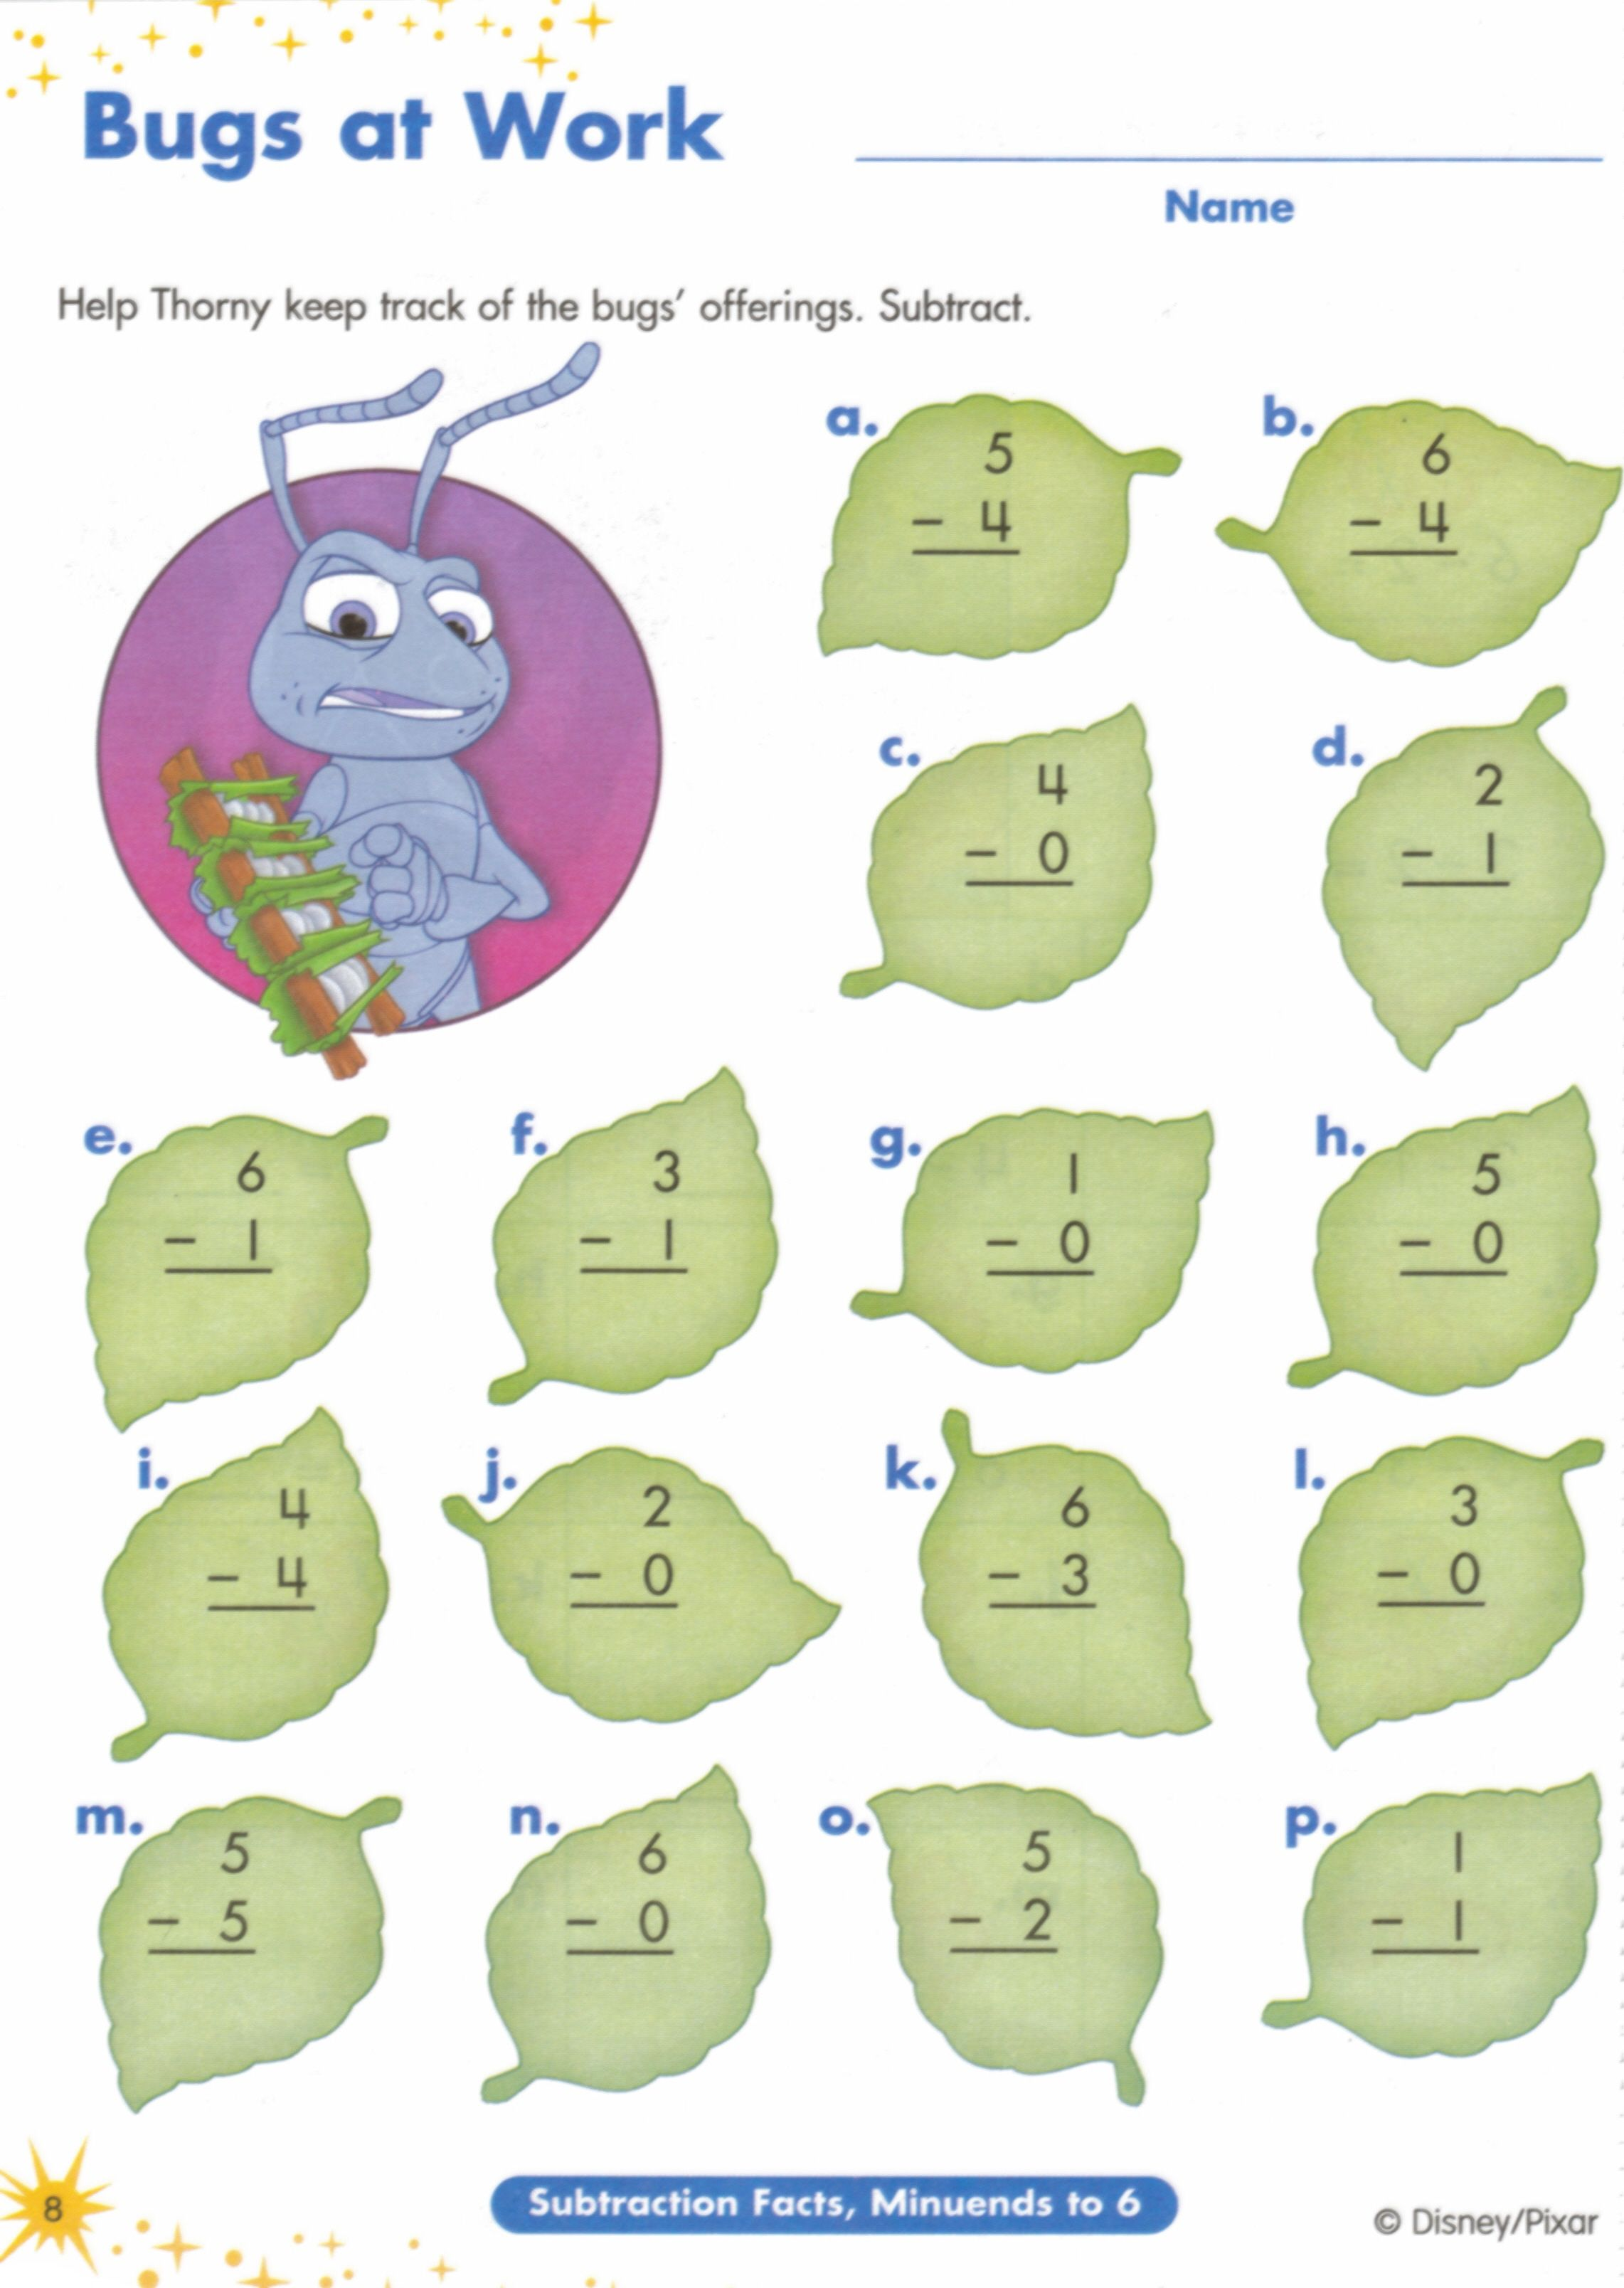 Proatmealus  Ravishing  Images About Worksheets On Pinterest  Fun Facts For Kids  With Fetching  Images About Worksheets On Pinterest  Fun Facts For Kids Earth Day Worksheets And Jungles With Alluring Worksheet Days Of The Week Also Pythagorean Theorem Converse Worksheet In Addition Negative And Fractional Exponents Worksheet And Language Arts First Grade Worksheets As Well As My Food Pyramid Worksheet Additionally Graphing Points On A Coordinate Plane Worksheet From Pinterestcom With Proatmealus  Fetching  Images About Worksheets On Pinterest  Fun Facts For Kids  With Alluring  Images About Worksheets On Pinterest  Fun Facts For Kids Earth Day Worksheets And Jungles And Ravishing Worksheet Days Of The Week Also Pythagorean Theorem Converse Worksheet In Addition Negative And Fractional Exponents Worksheet From Pinterestcom